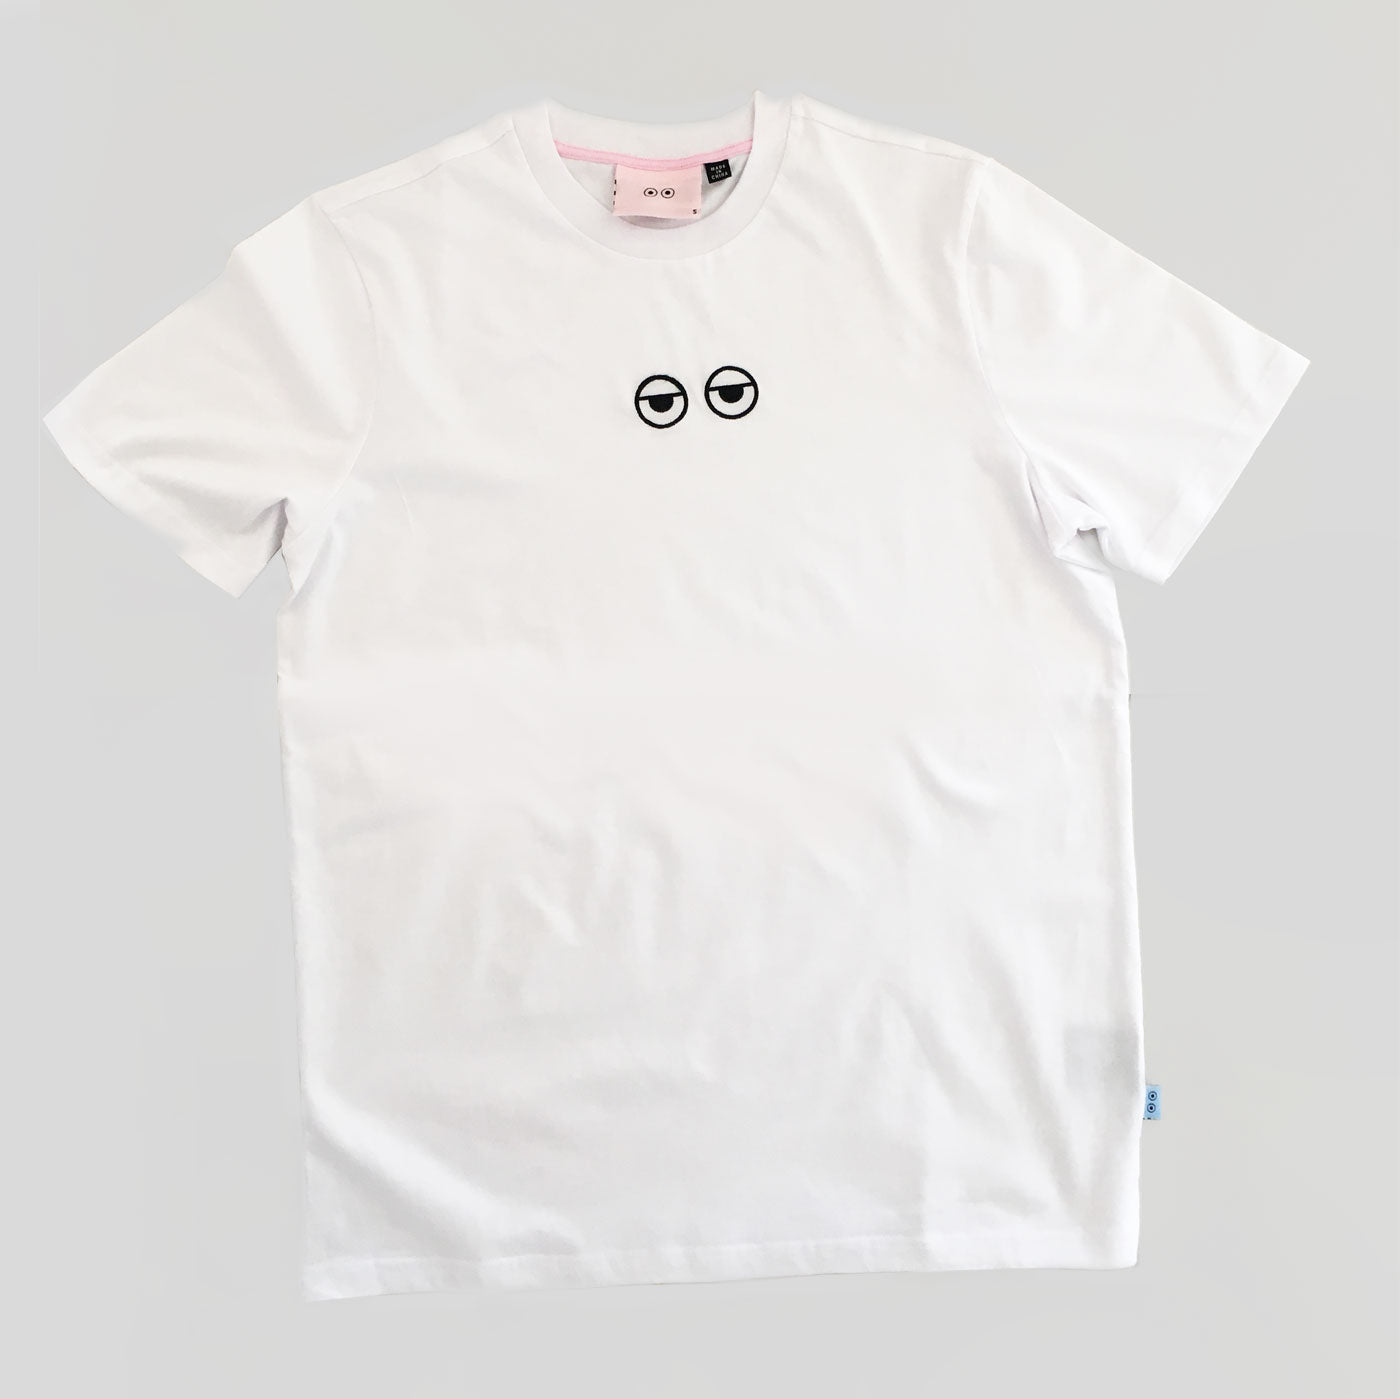 Lazy Oaf x Studio Arhoj Eyes Open T-Shirt.